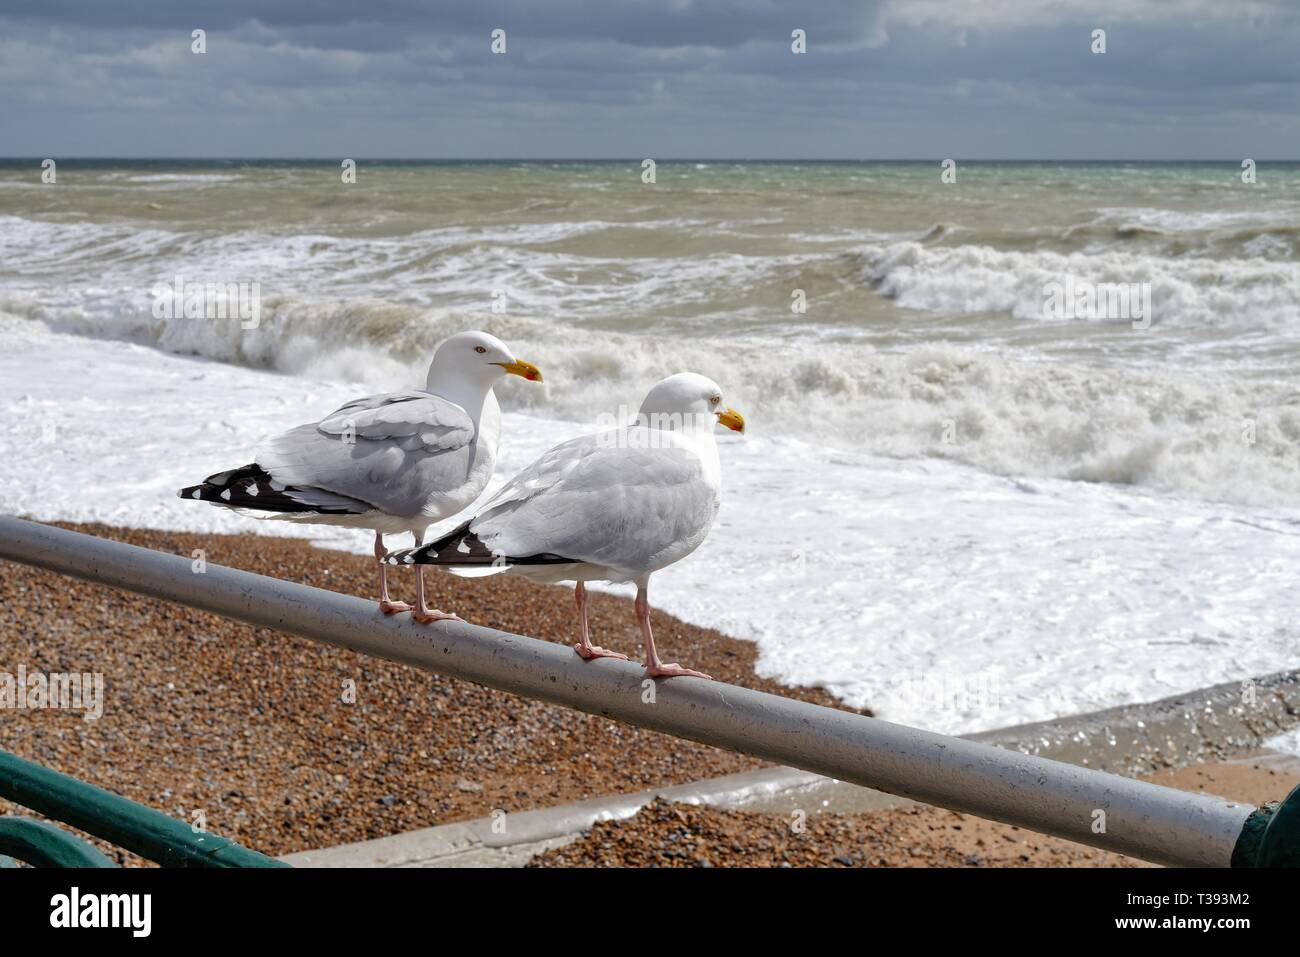 Close up of two herring gulls,Larus argentatus, perched on a seafront railing looking out at a rough stormy sea in Hove East Sussex England UK - Stock Image